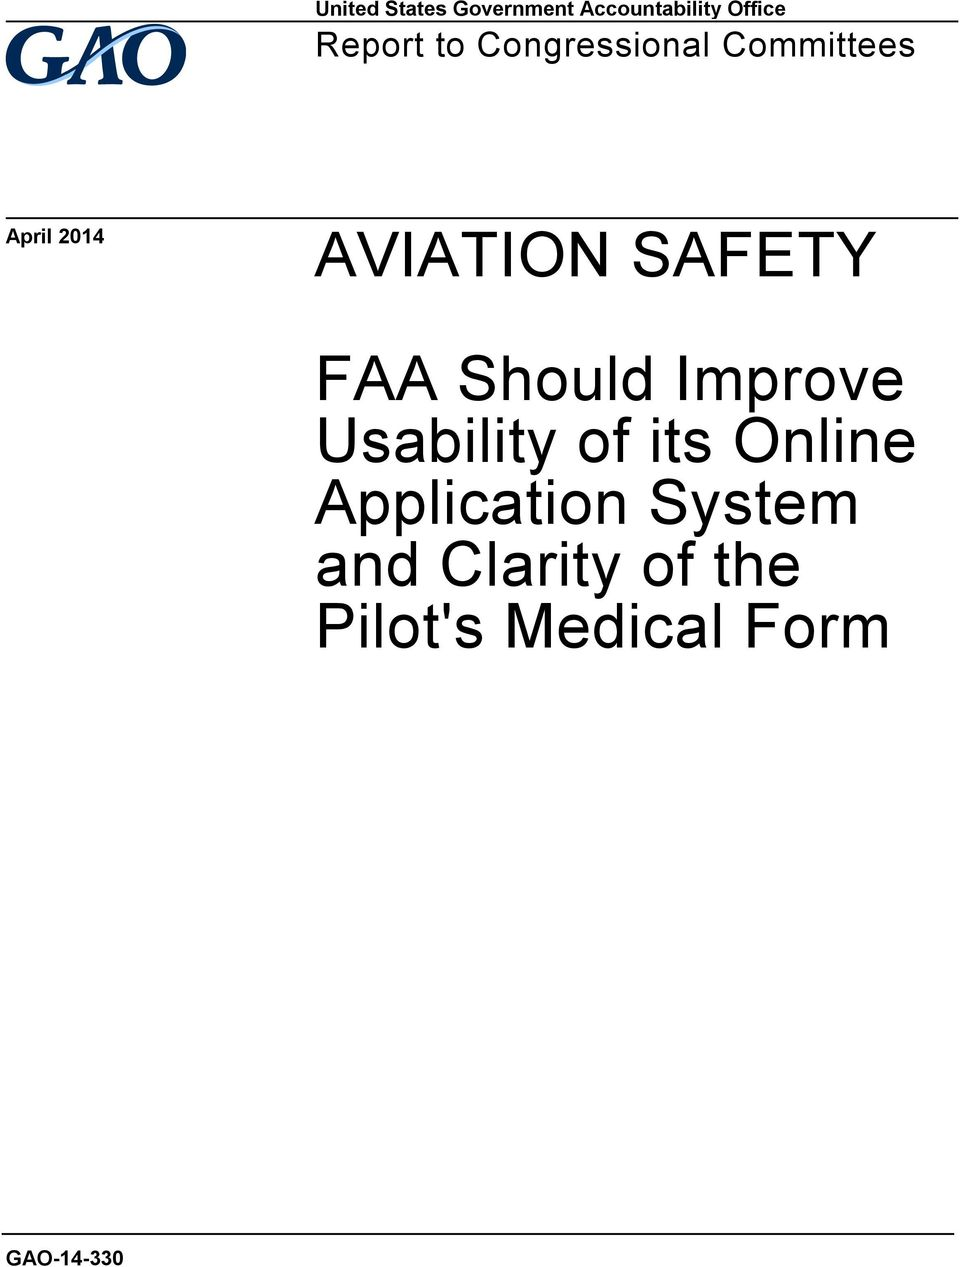 AVIATION SAFETY  FAA Should Improve Usability of its Online